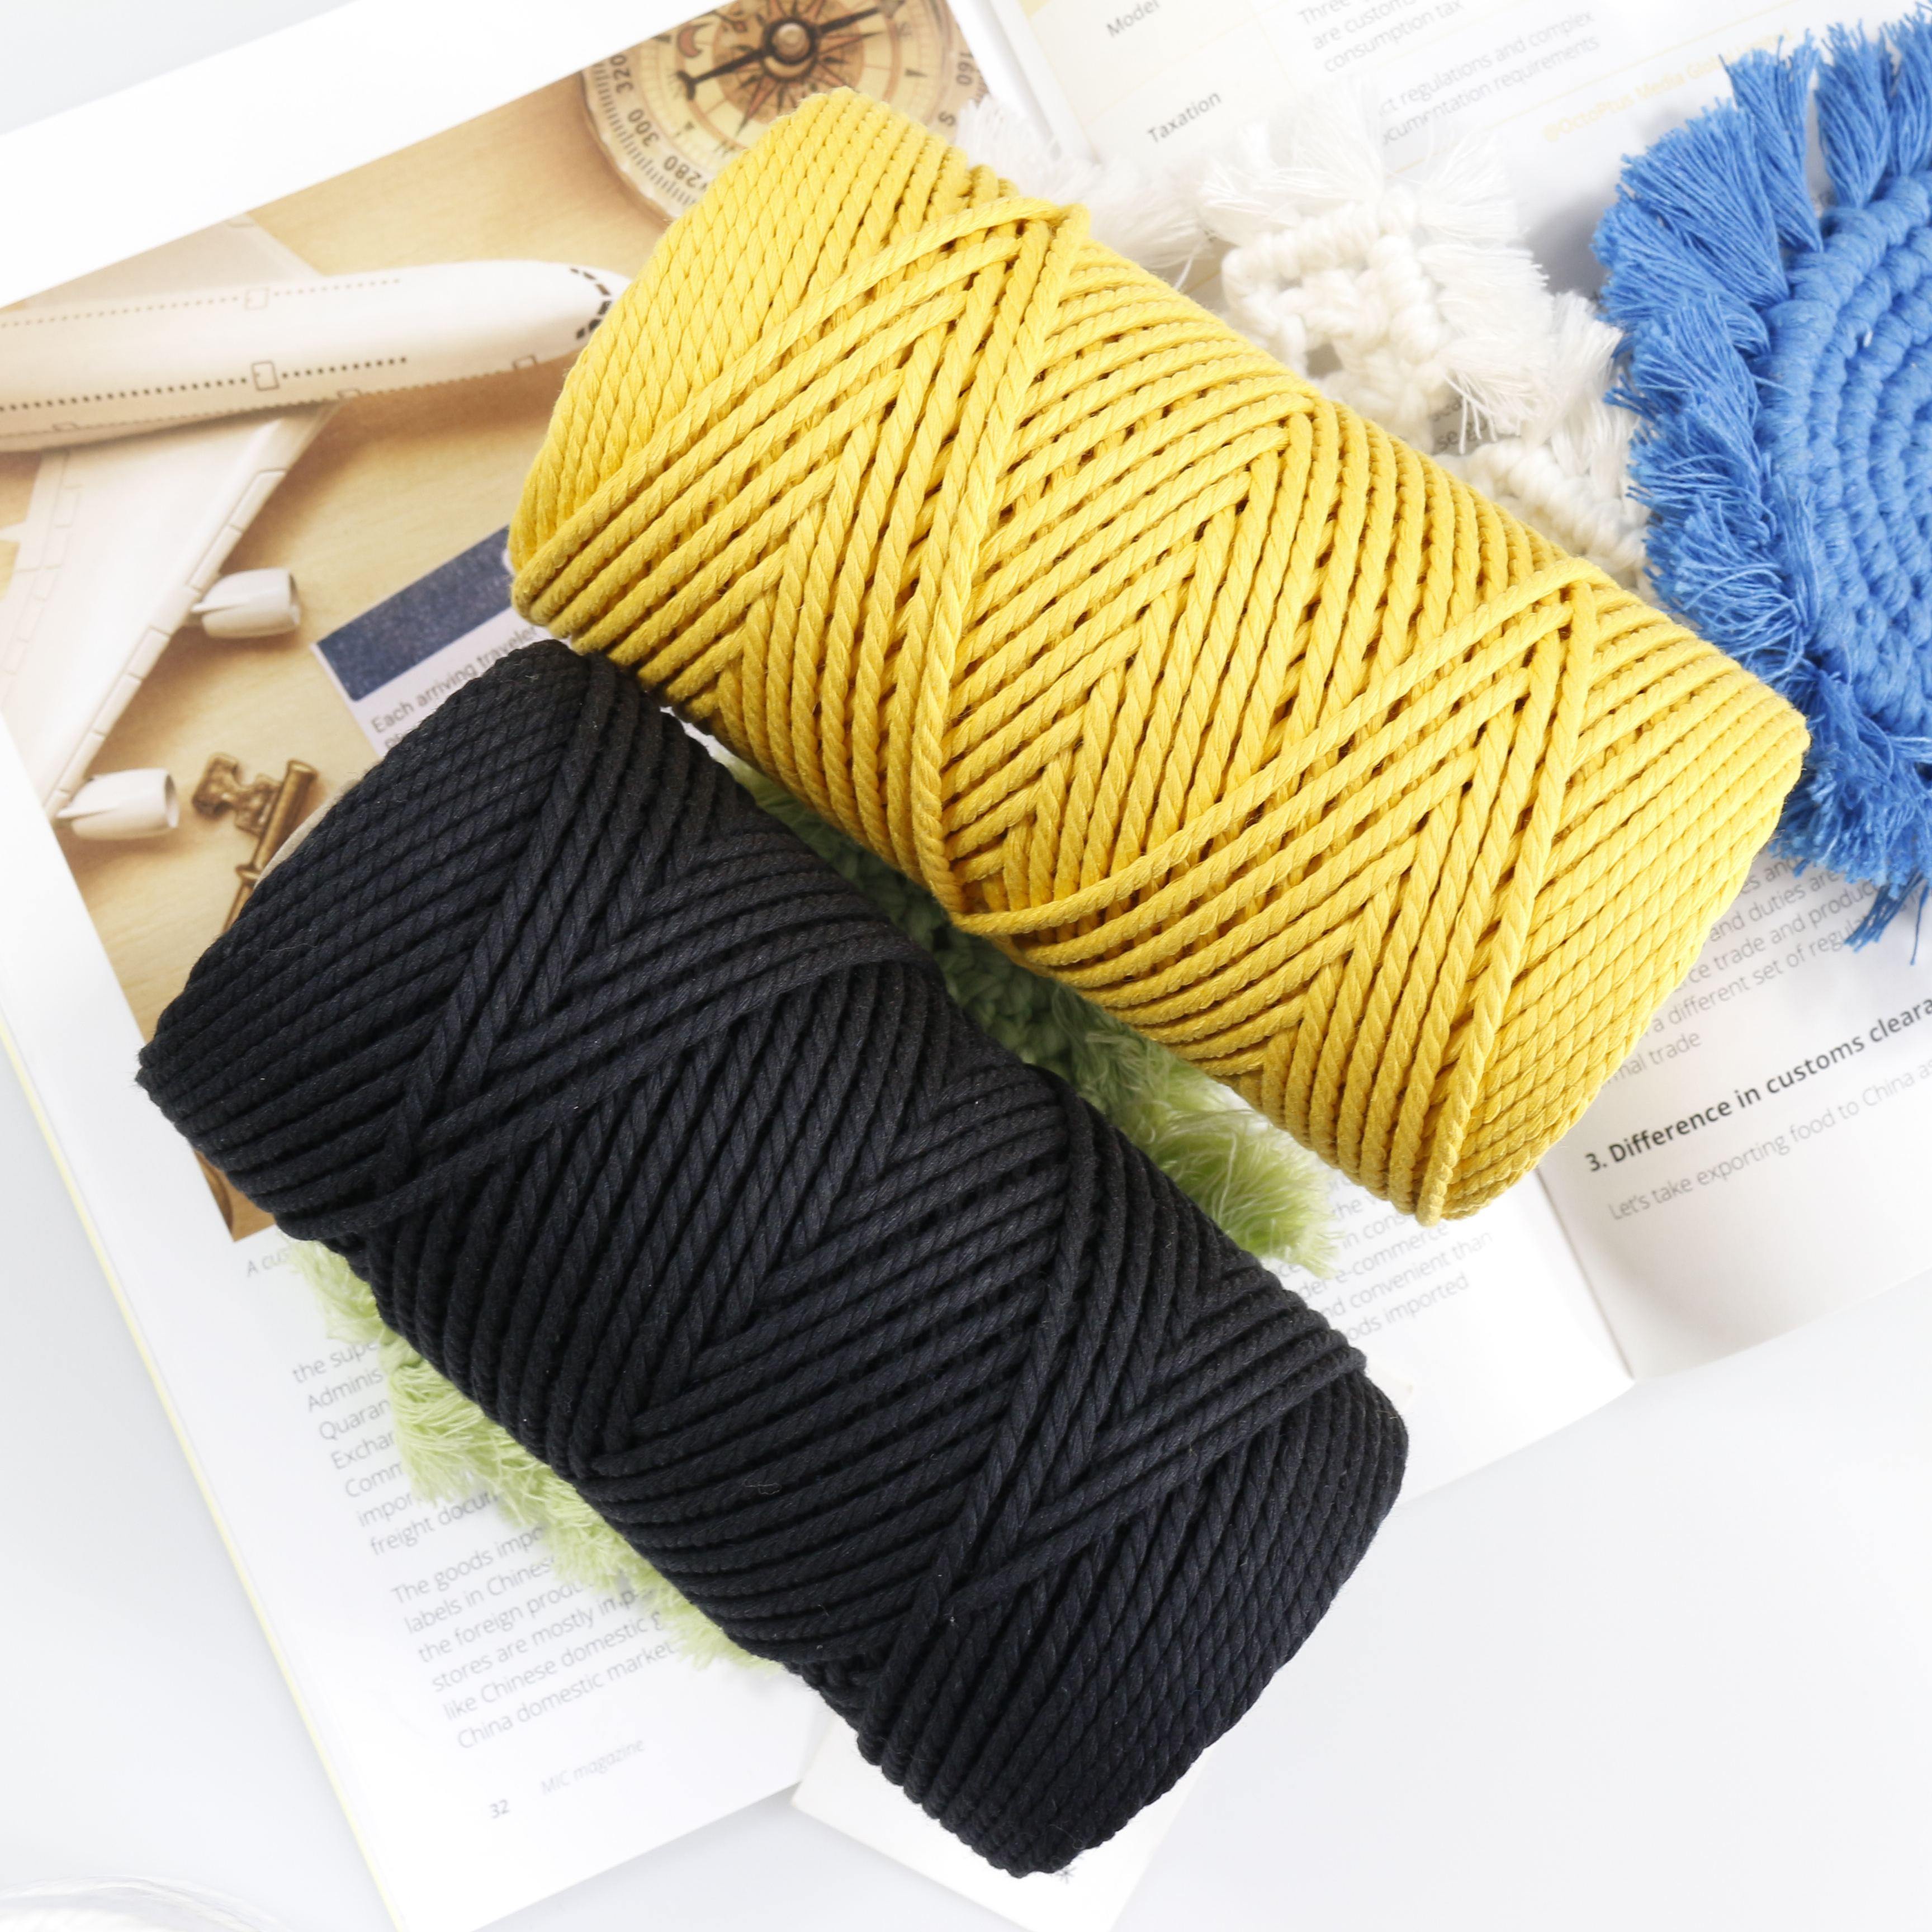 3ミリメートル4ミリメートル5ミリメートル6ミリメートルTwist Rope Macrame Cotton Cord Multi Color Drawstring Rope